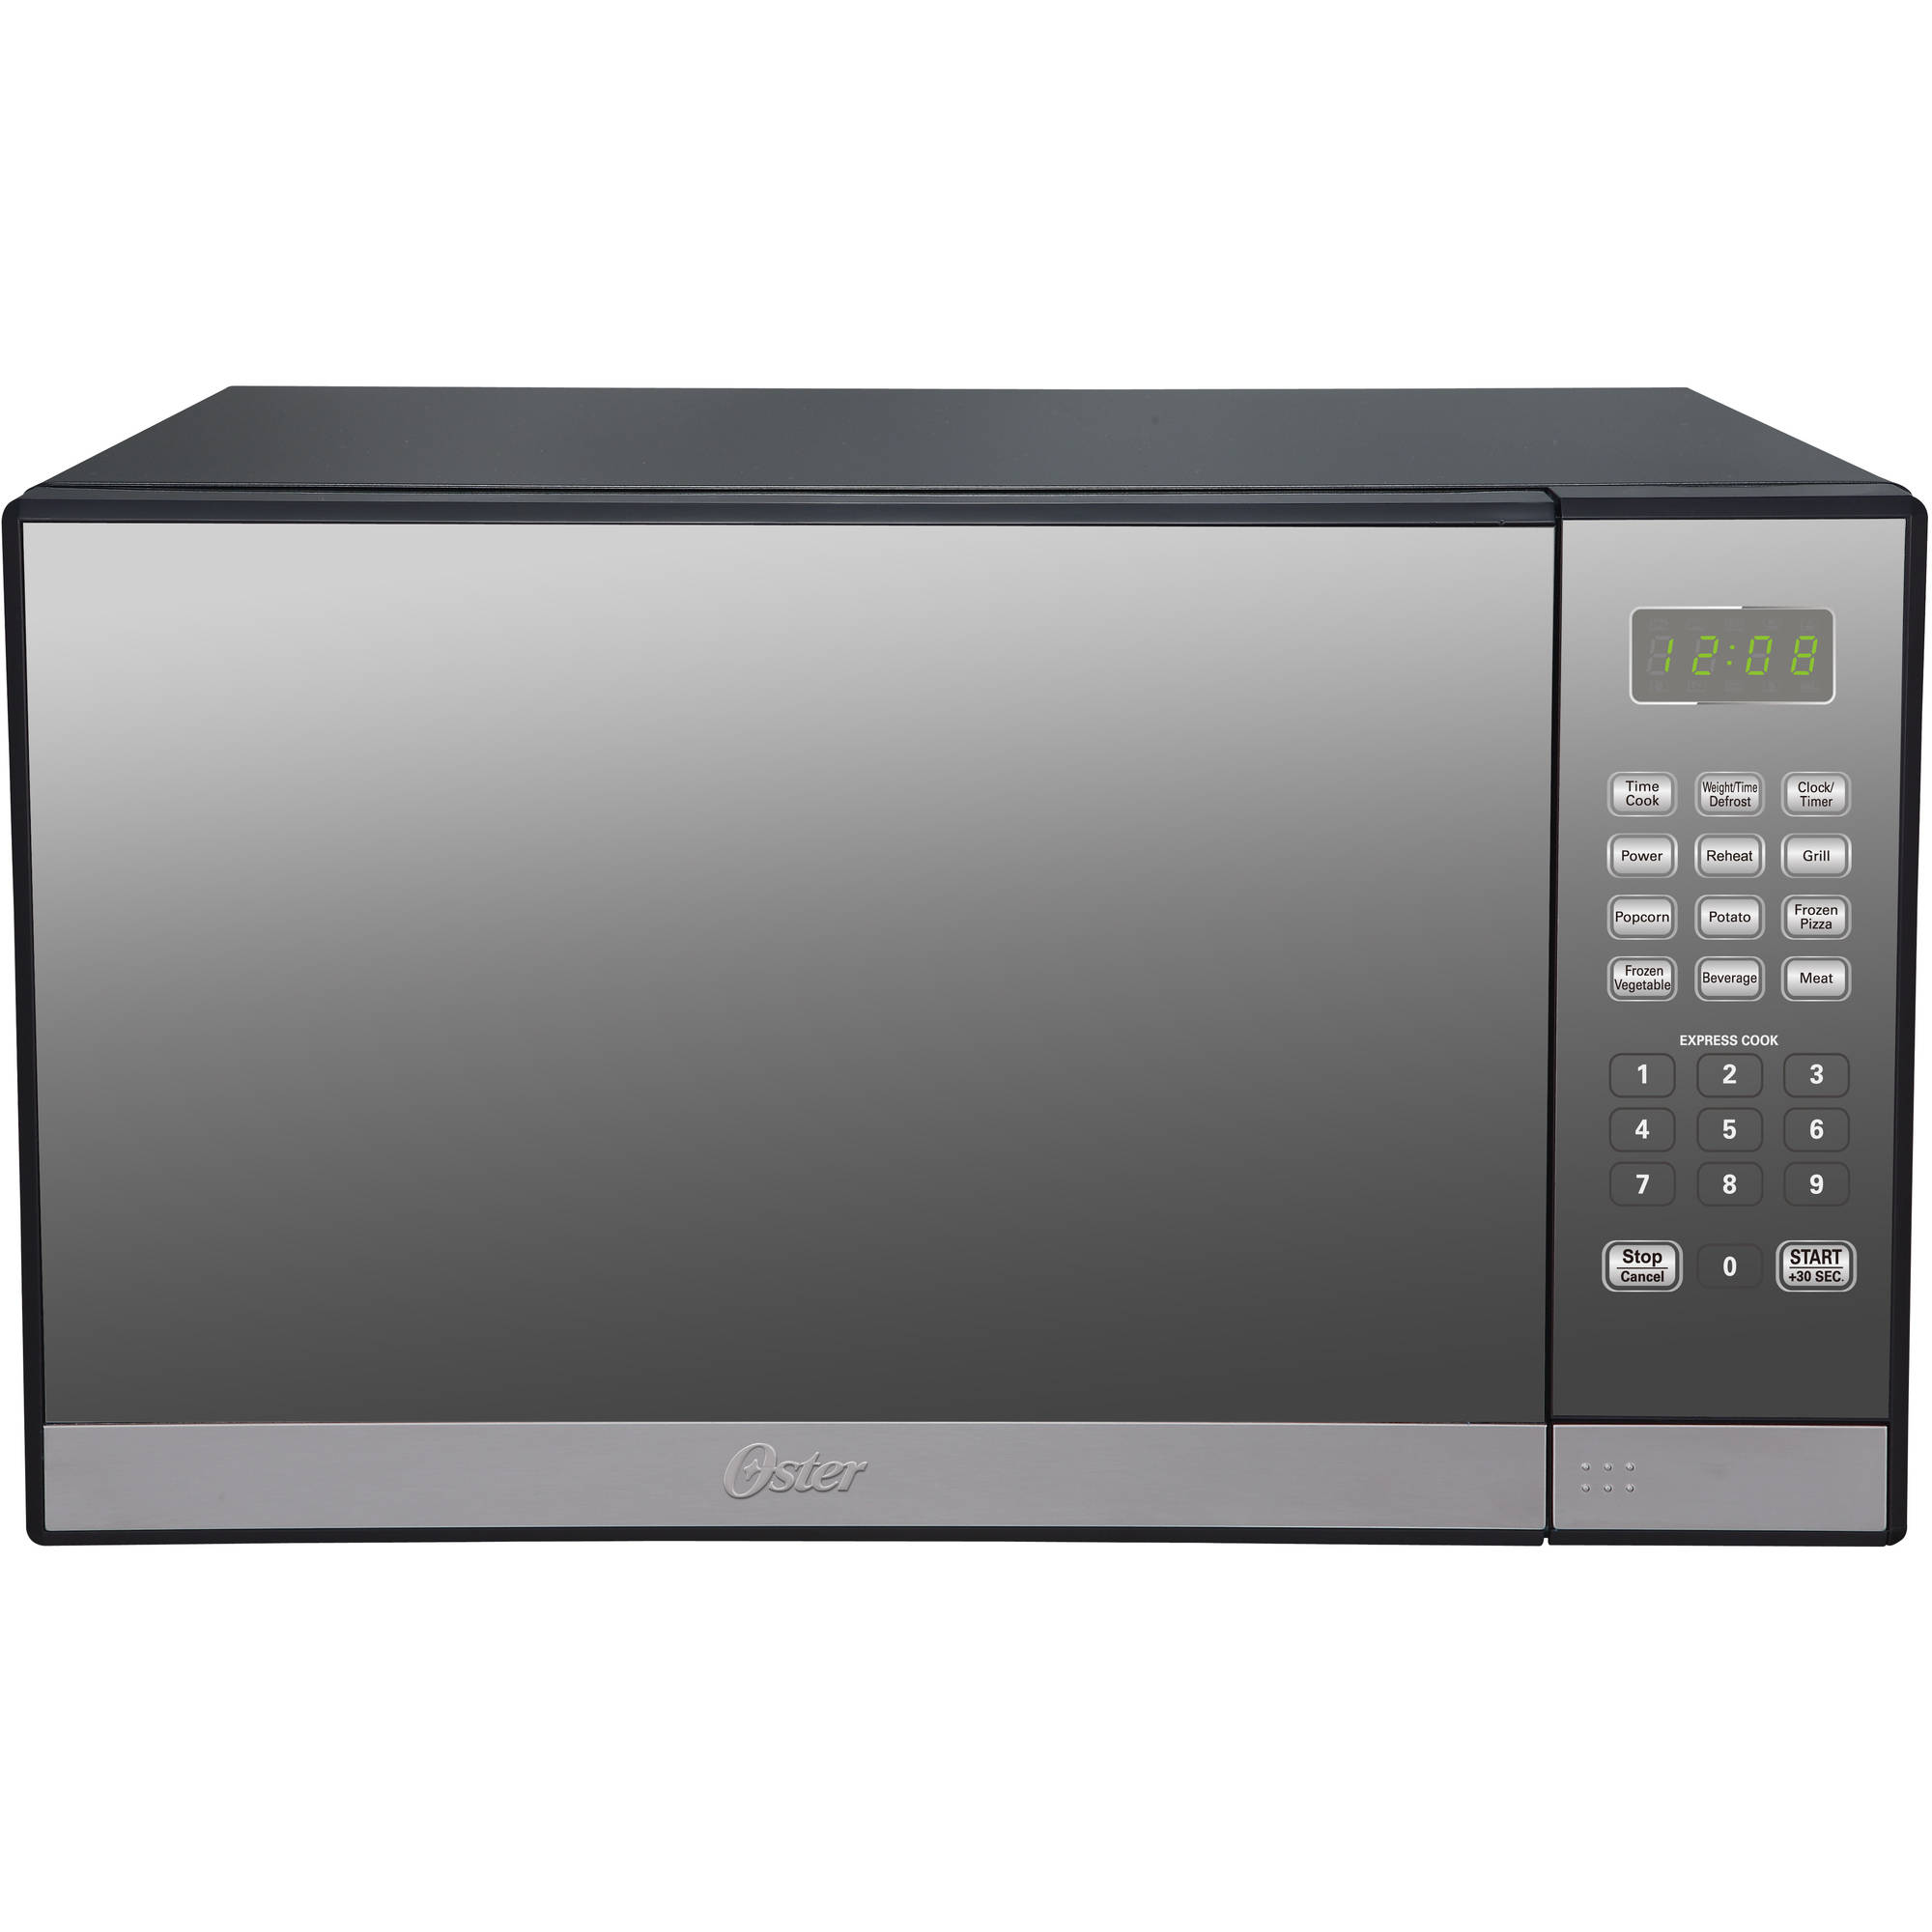 oster 1 3 cu ft microwave oven with grill mirror finish walmart com rh walmart com Oster Instruction Manual Oster Microwave ManualsOnline